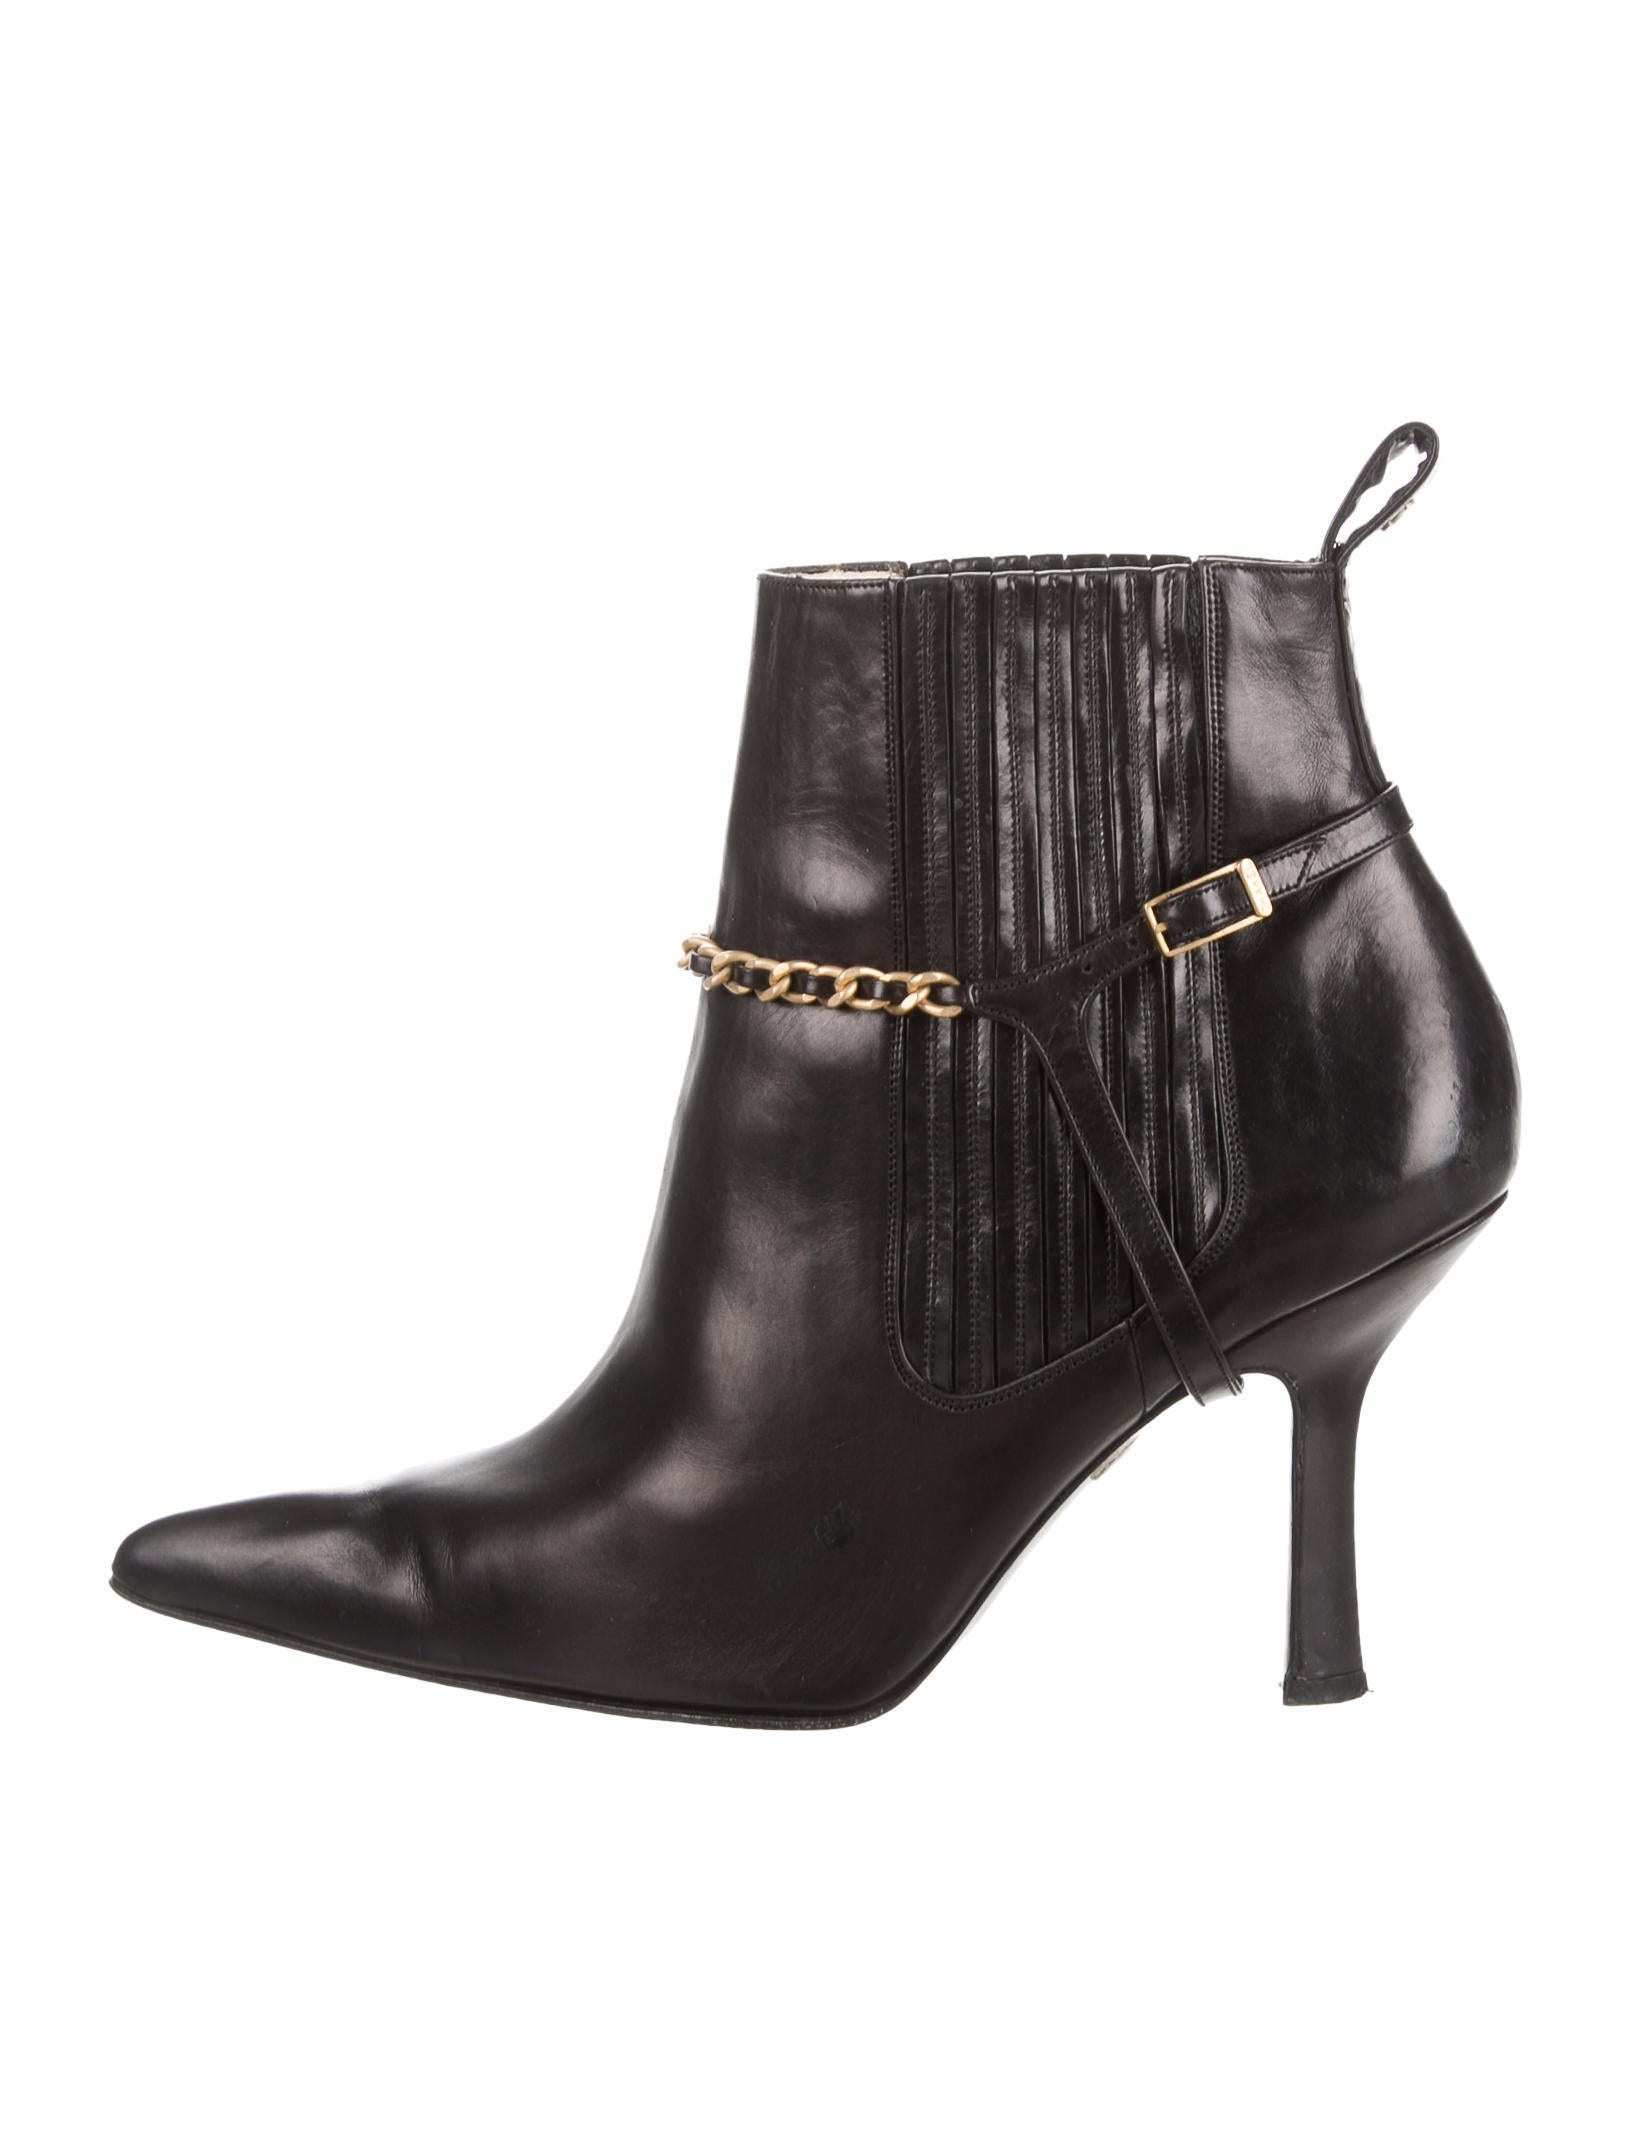 chanel leather pointed toe booties shoes cha163377